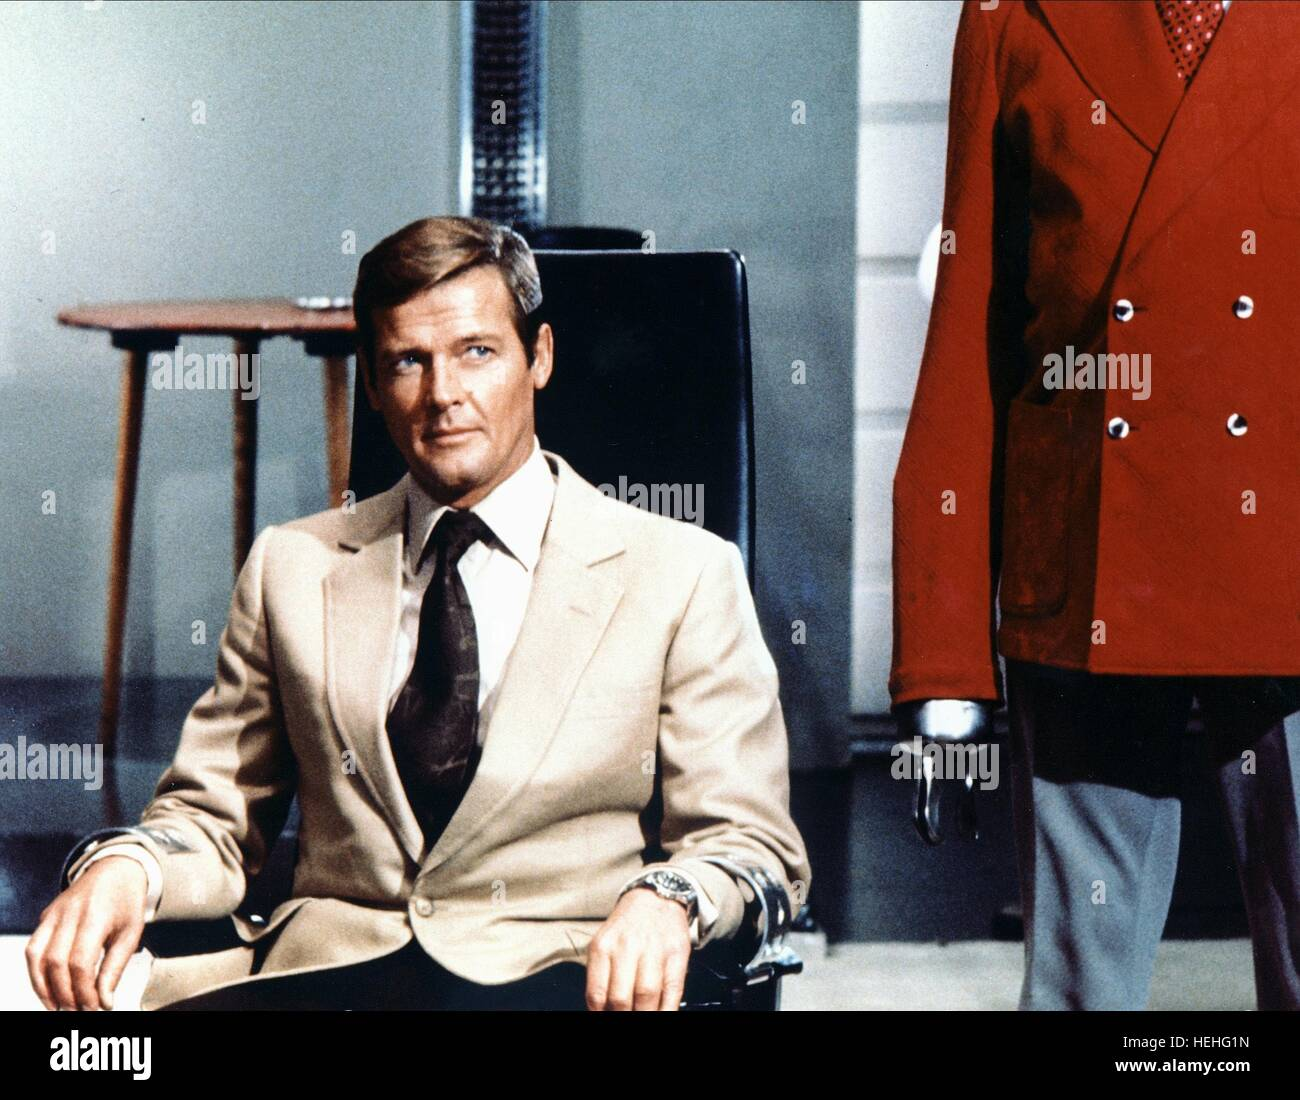 LIVE AND LET DIE: JAMES BOND, ROGER MOORE, 1973 - Stock Image